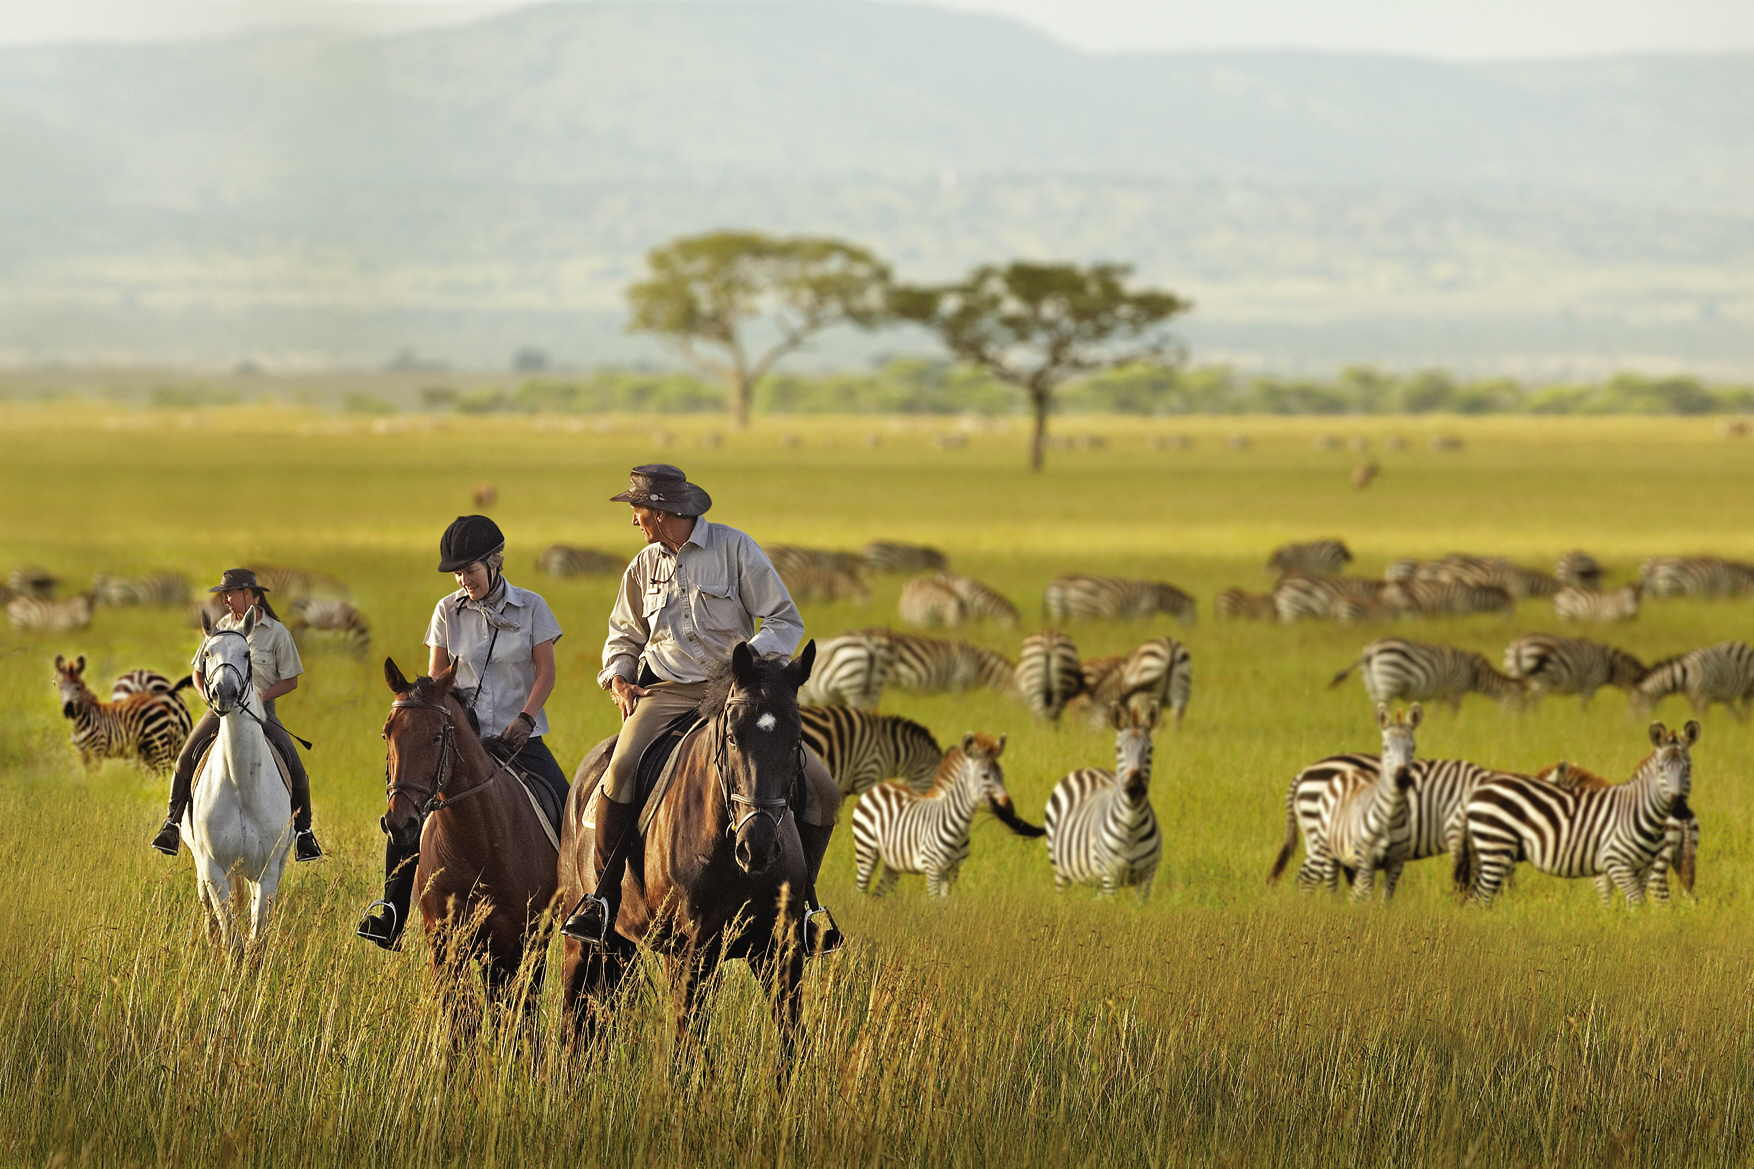 serengeti-national-park-zebras